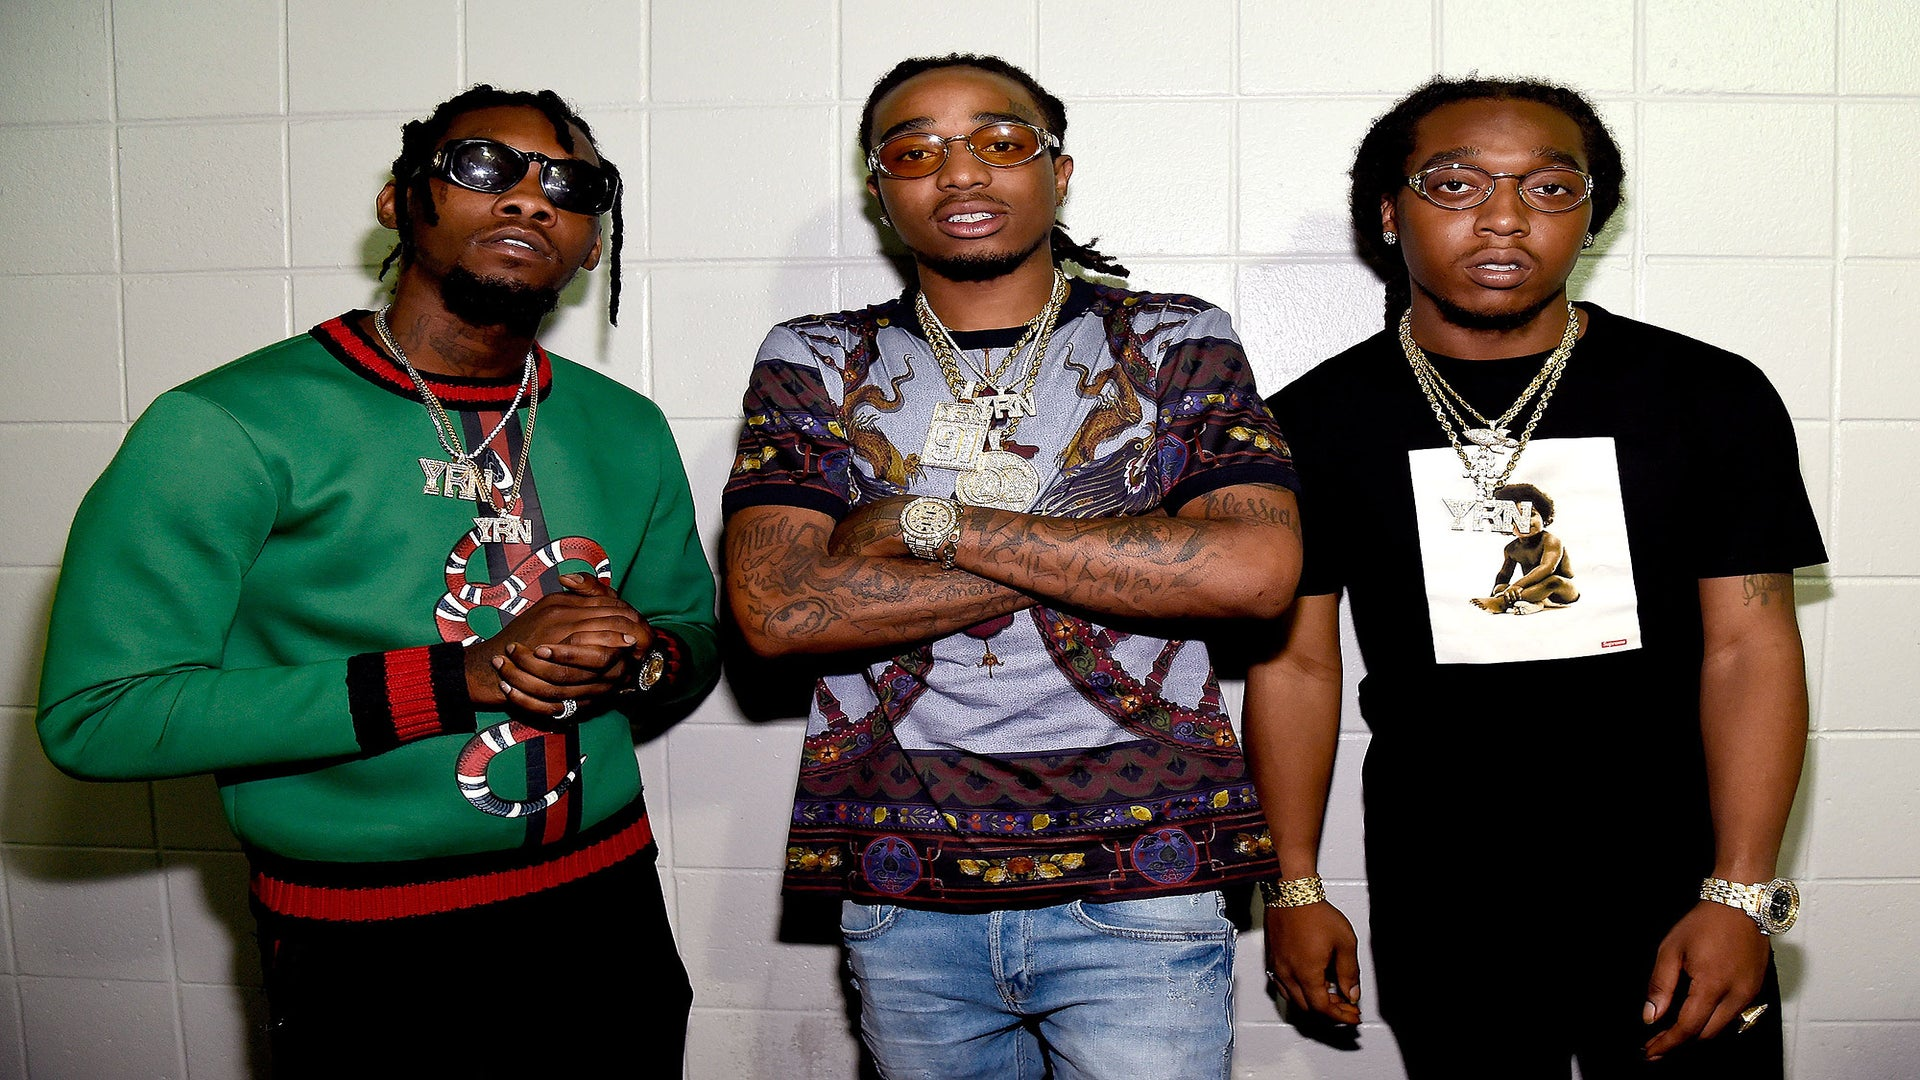 Migos' Manager Claims Racial Profiling as They Are Kicked Off Delta Flight